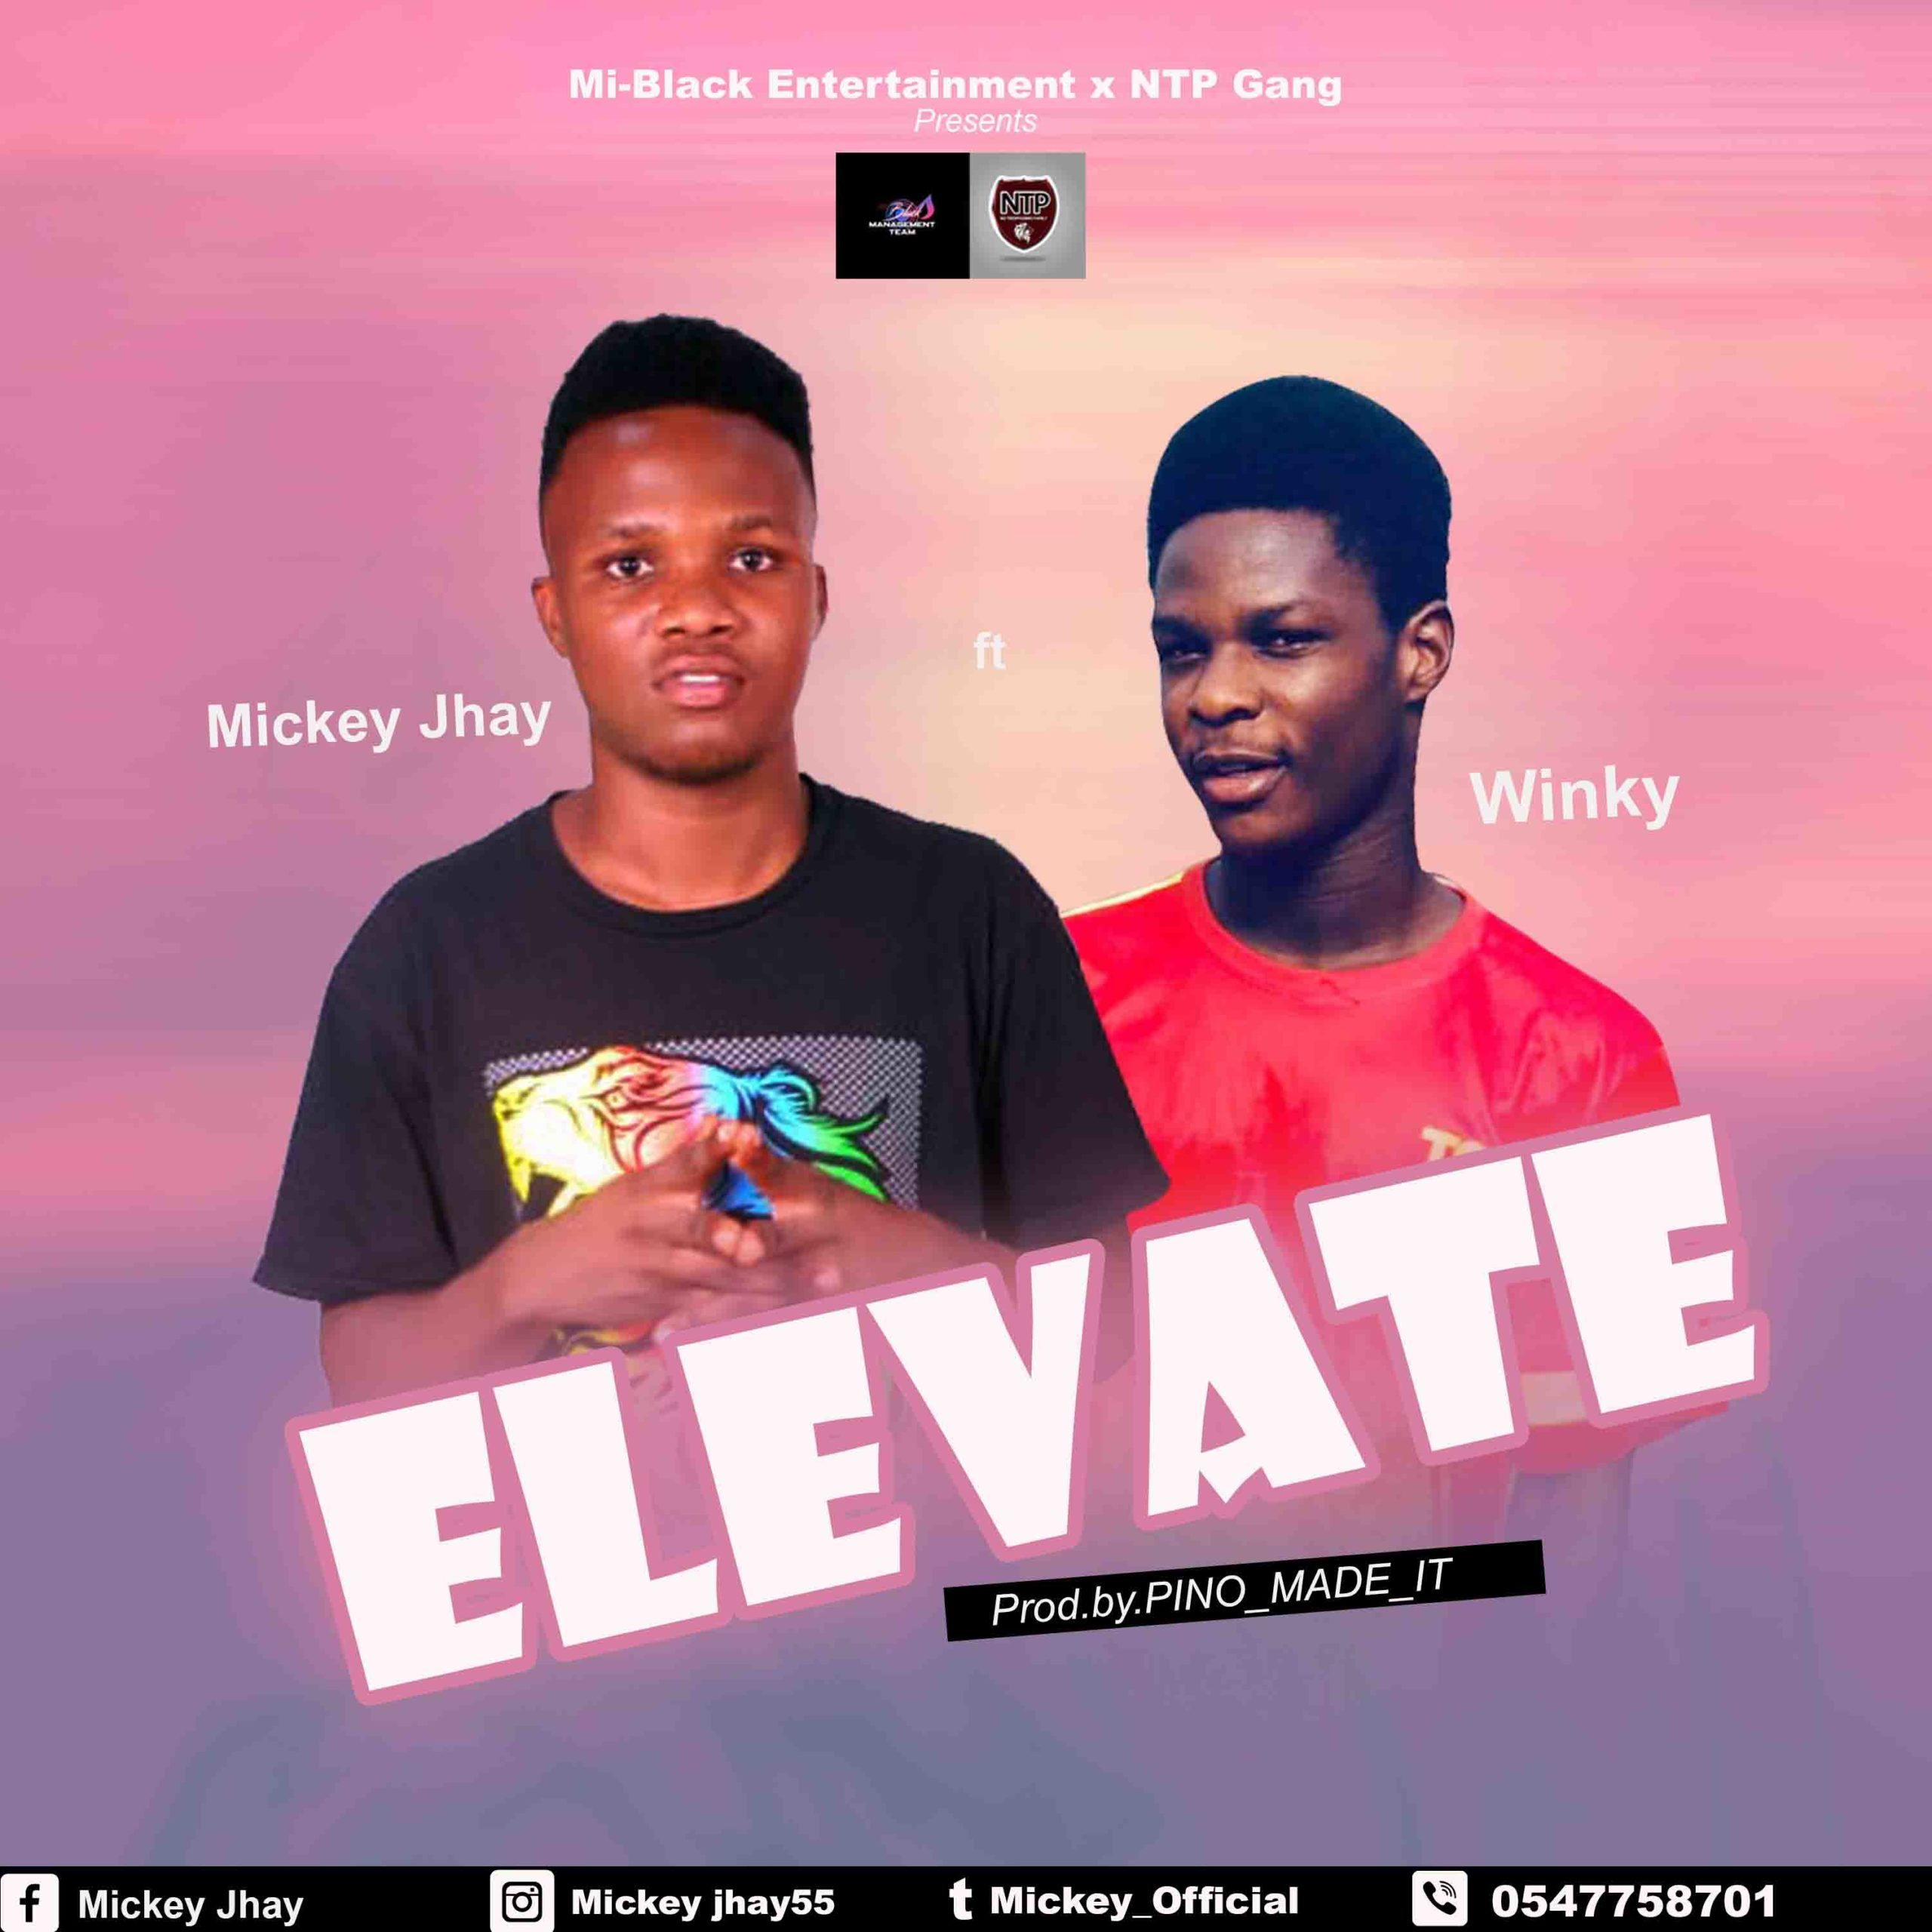 Mickey Jhay Ft. Winky - Elevate (Prod. By Pino Made It)